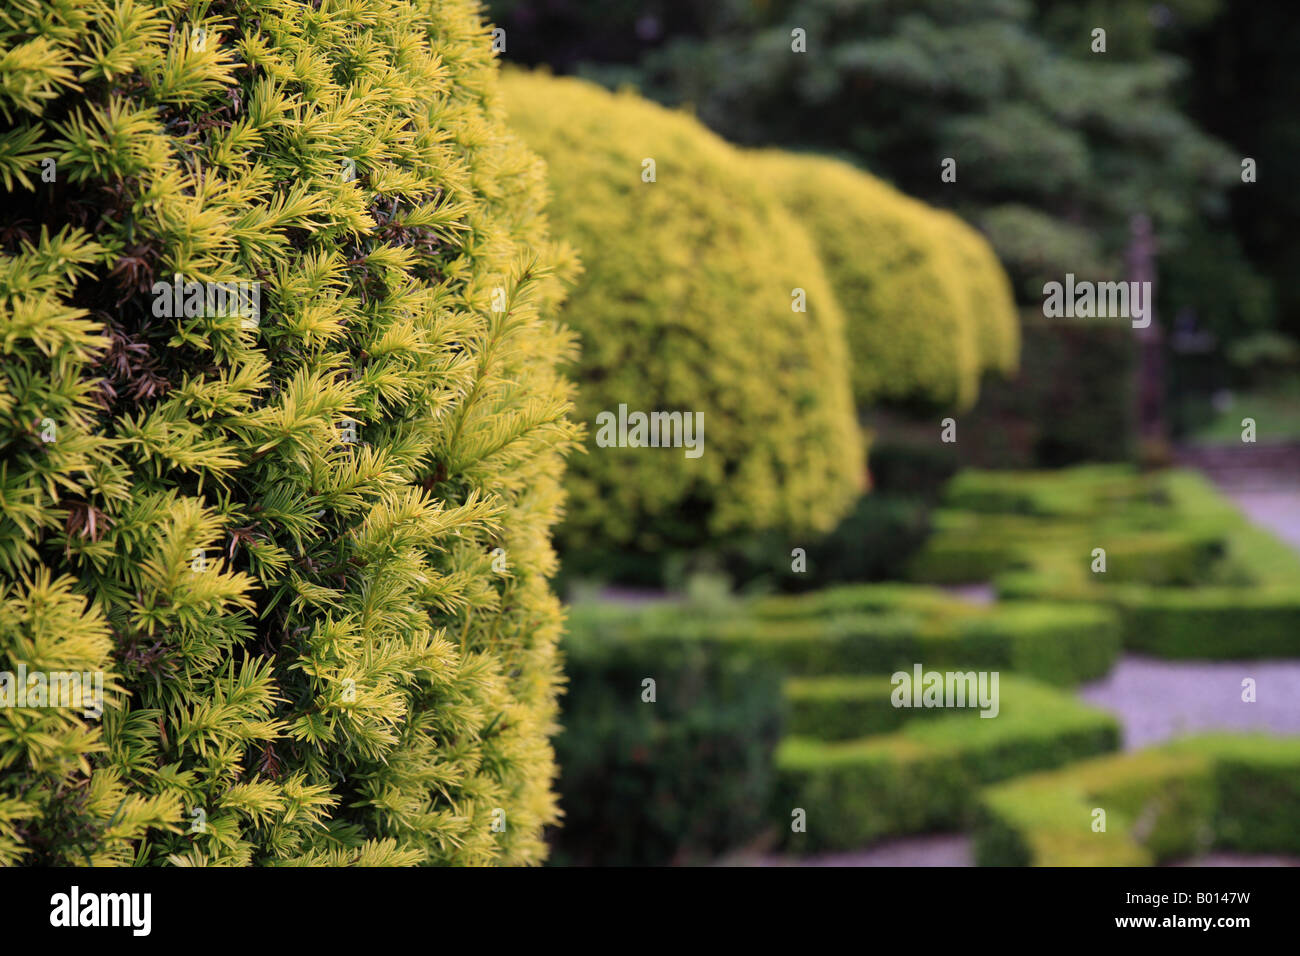 'Topiary' yew hedge clipped into ball shape 'Graythwaite Hall' Lake District. - Stock Image